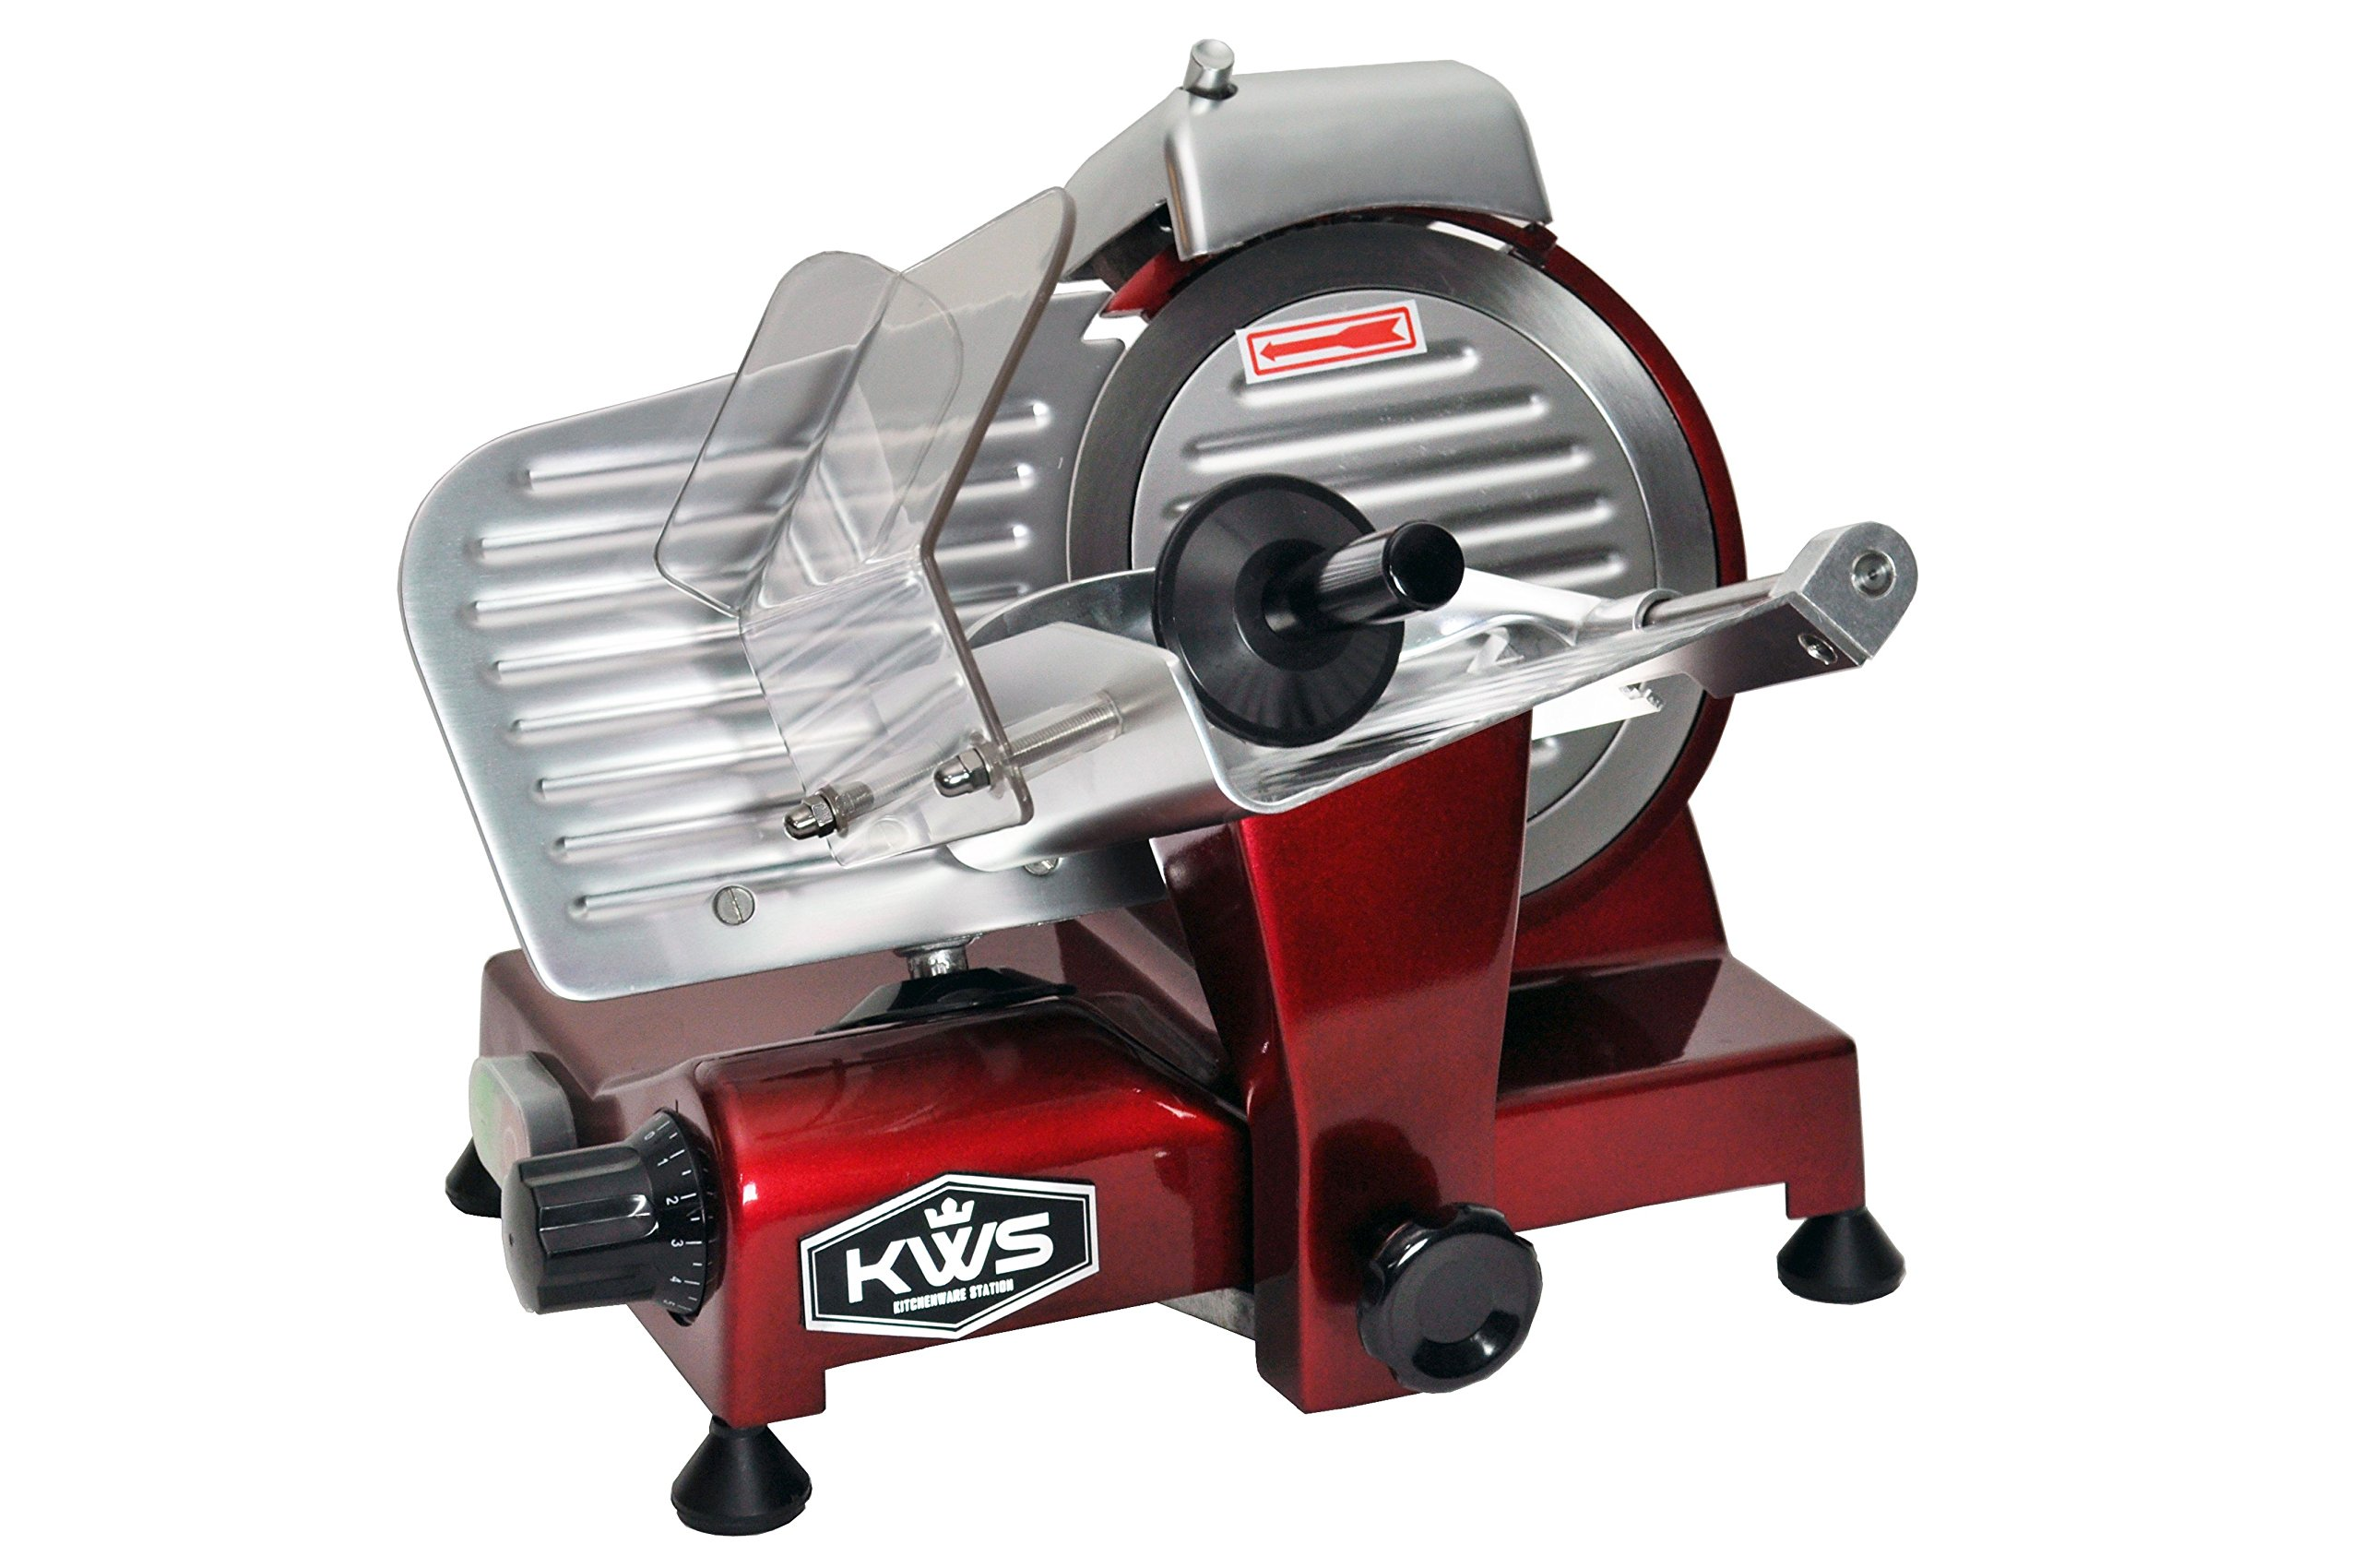 KWS Premium 200w Electric Meat Slicer 6'' Frozen Meat Deli Slicer Coffee Shop/restaurant and Home Use Low Noises (Red)